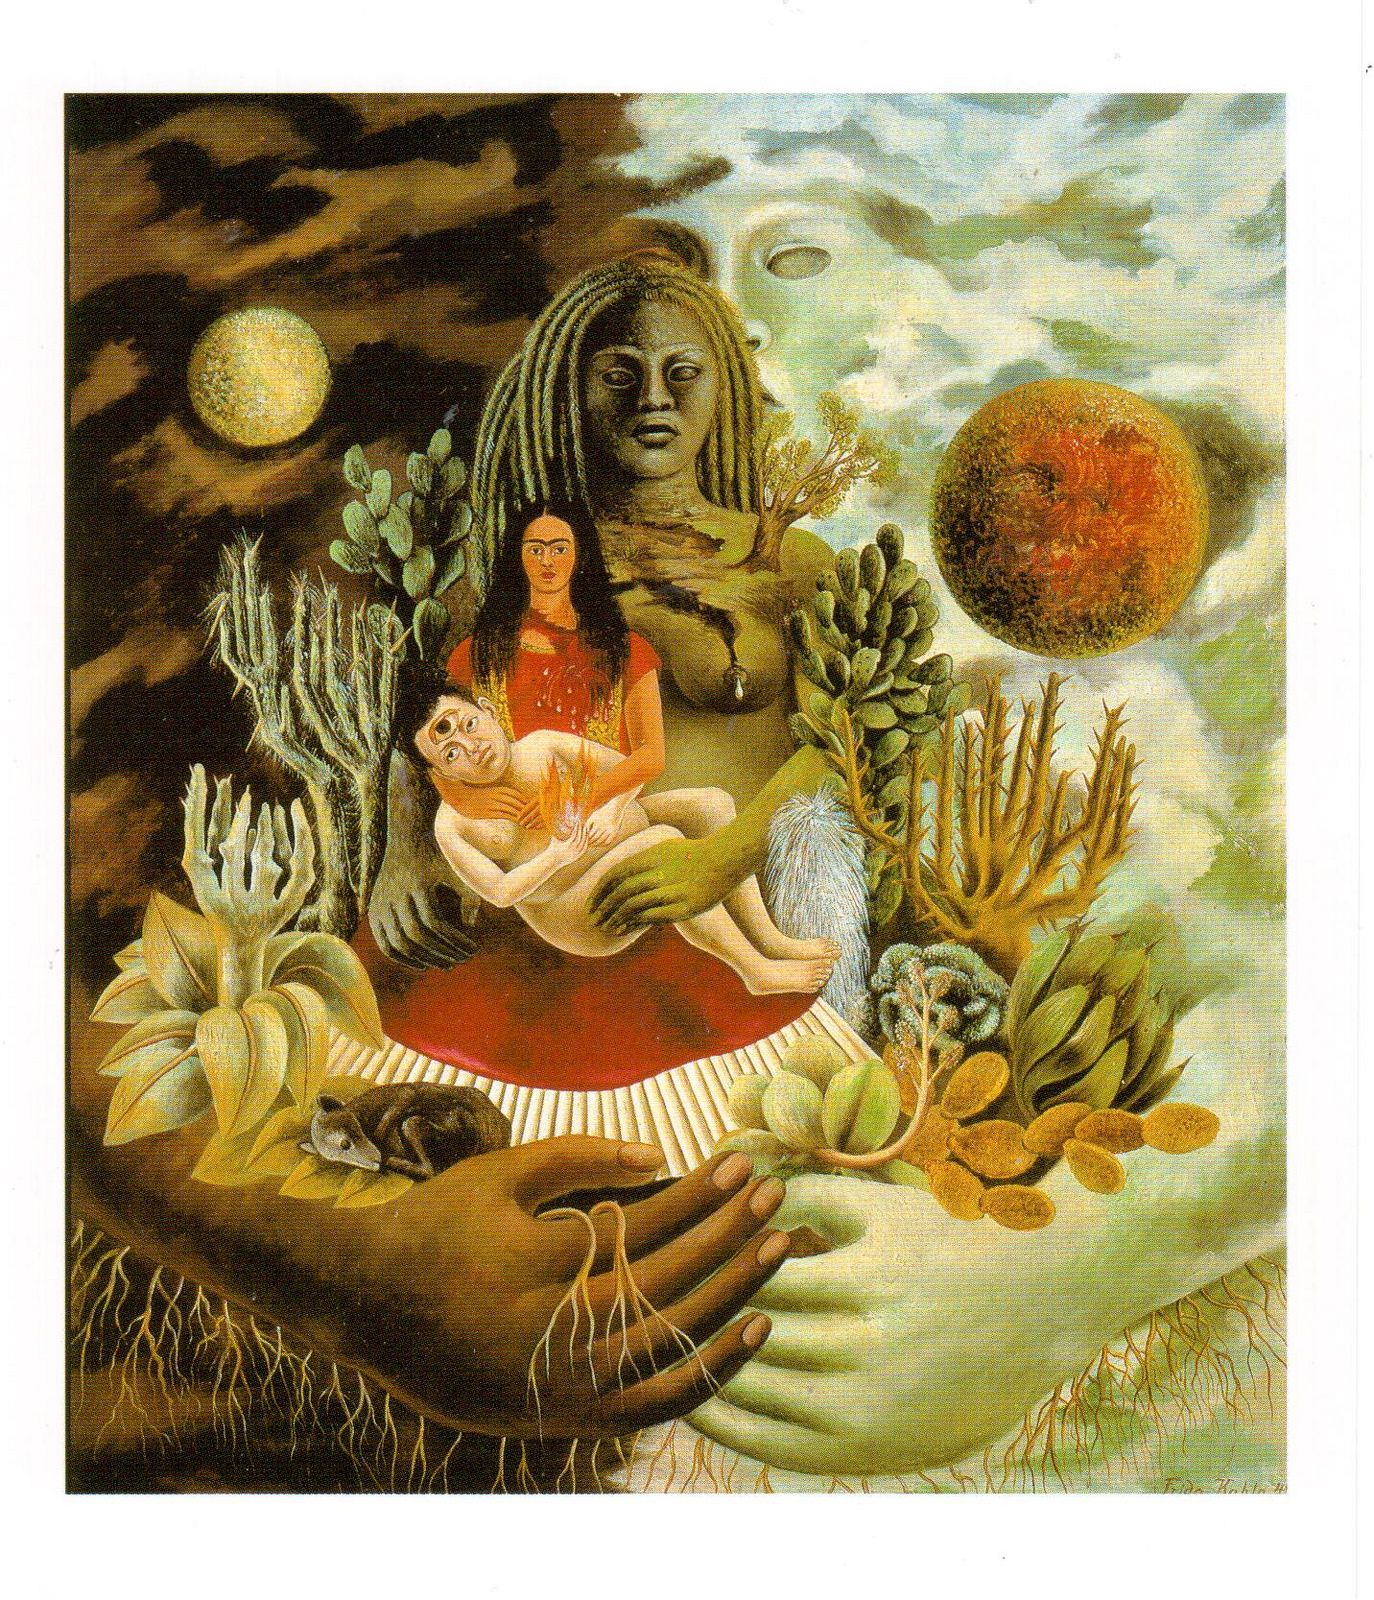 Postcard Of The Painting Love Embrace Universe Earth Mexico Me Diego And Mr Xolotl By Mexican Artist Frida Kahlo